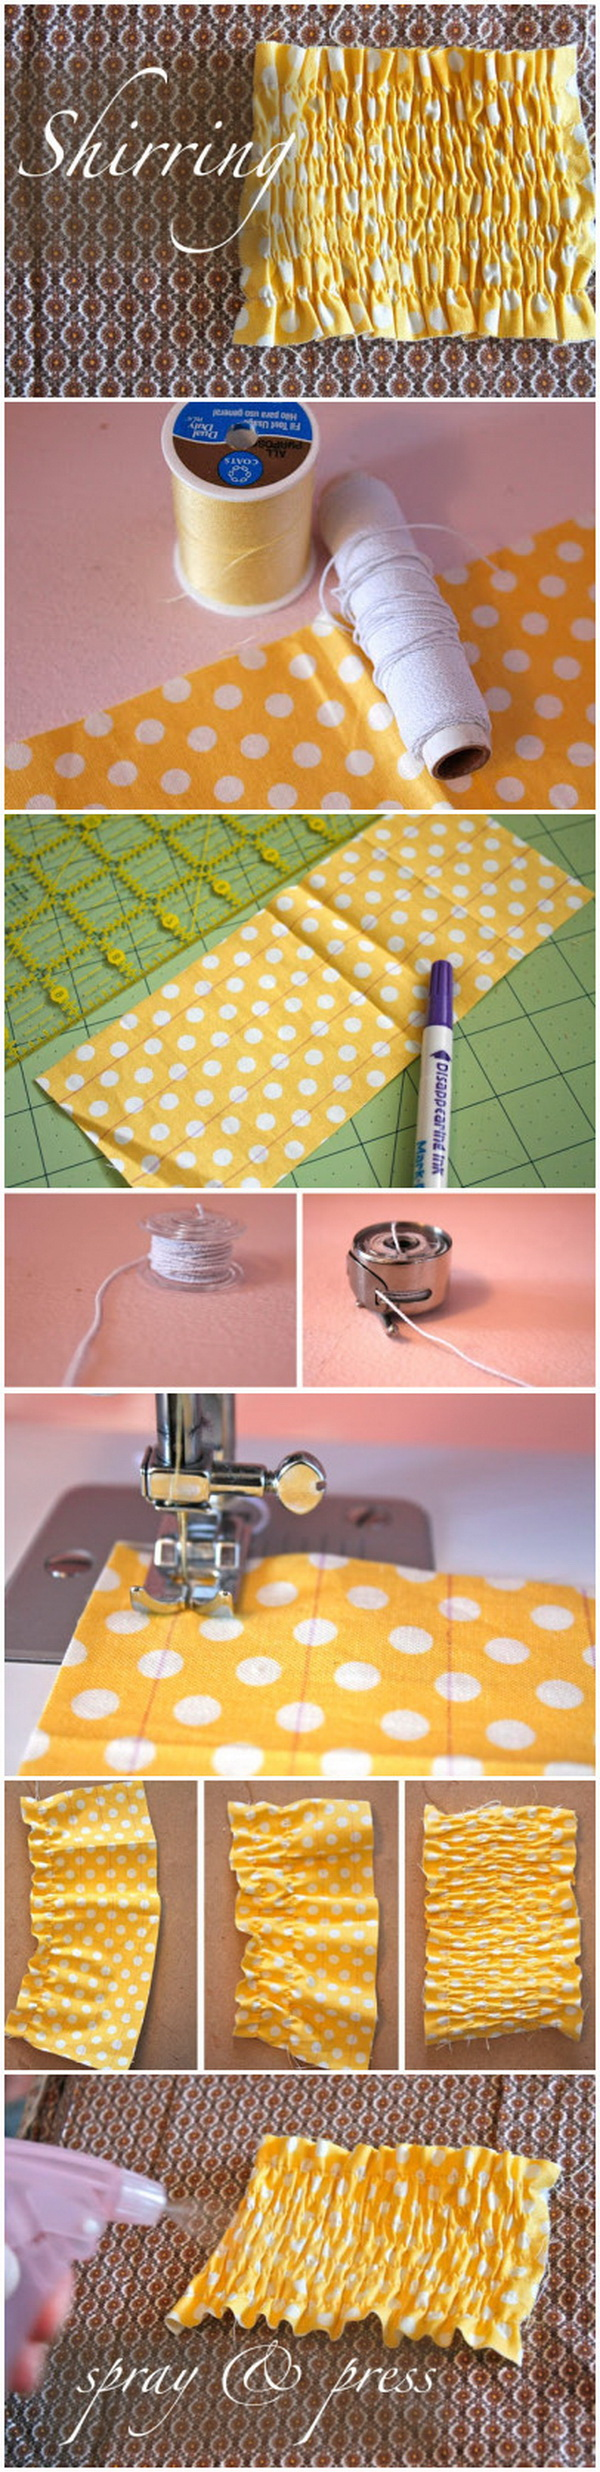 Genius Sewing Tips & Tricks: How to Create Shirring with Elastic Thread.